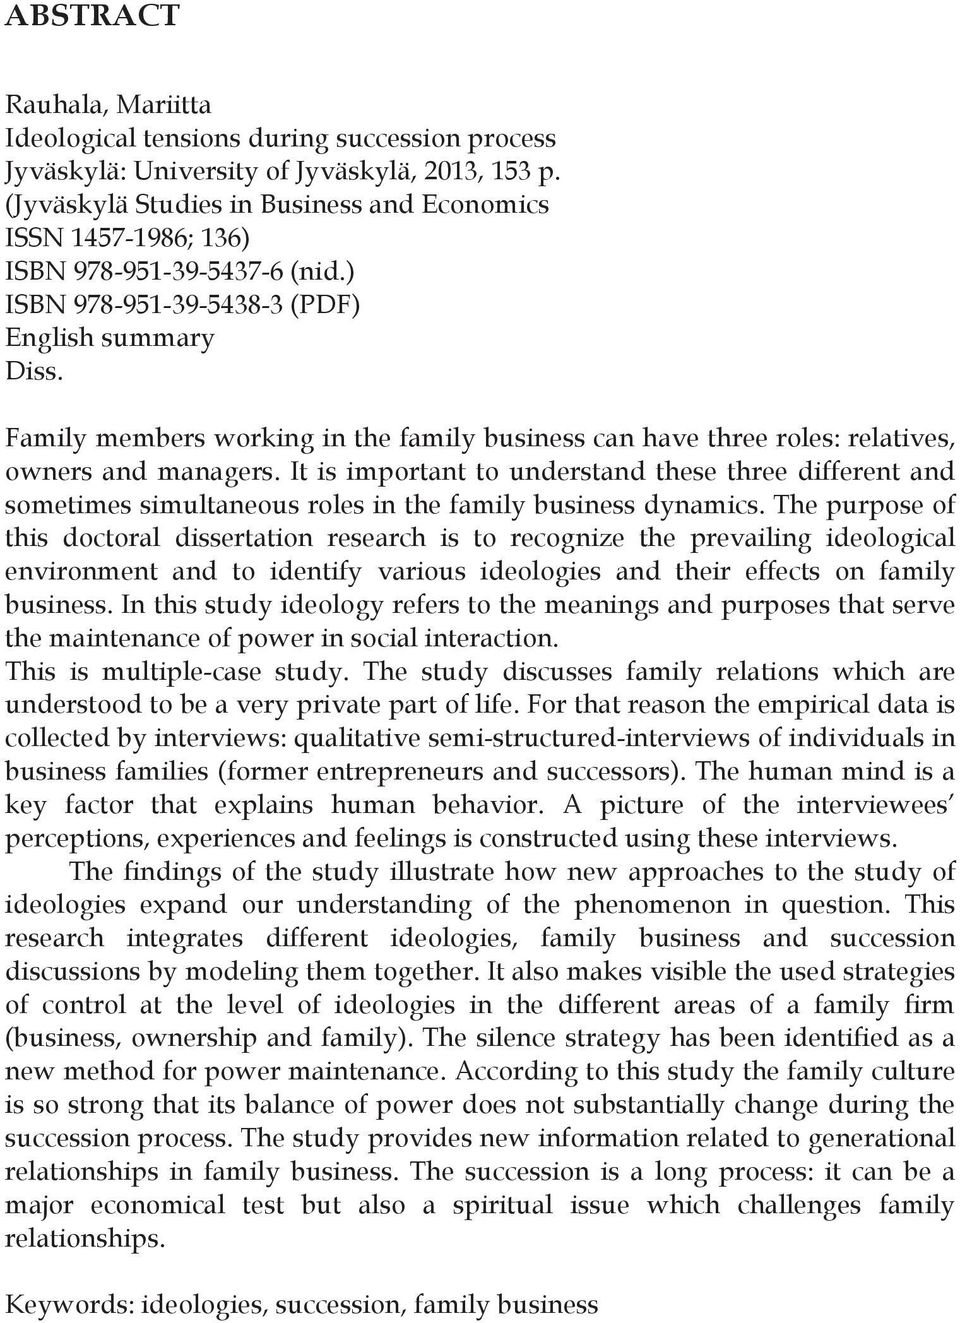 Family members working in the family business can have three roles: relatives, owners and managers.